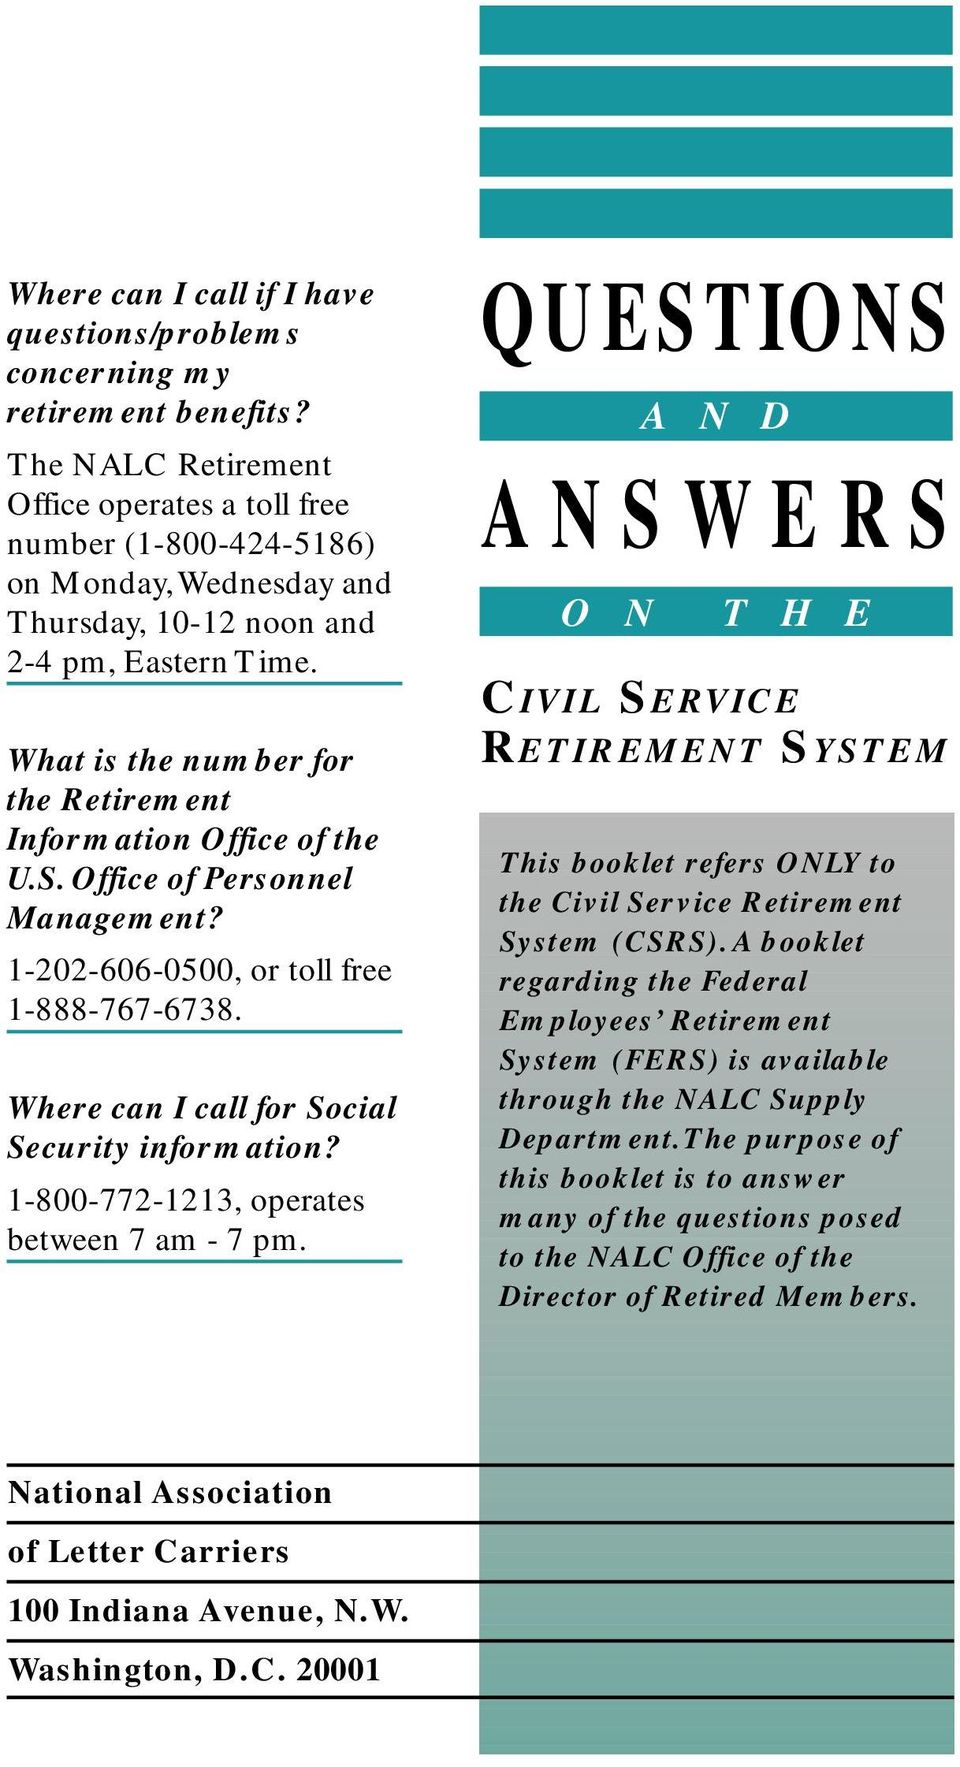 What is the number for the Retirement Information Office of the U.S. Office of Personnel Management? 1-202-606-0500, or toll free 1-888-767-6738. Where can I call for Social Security information?